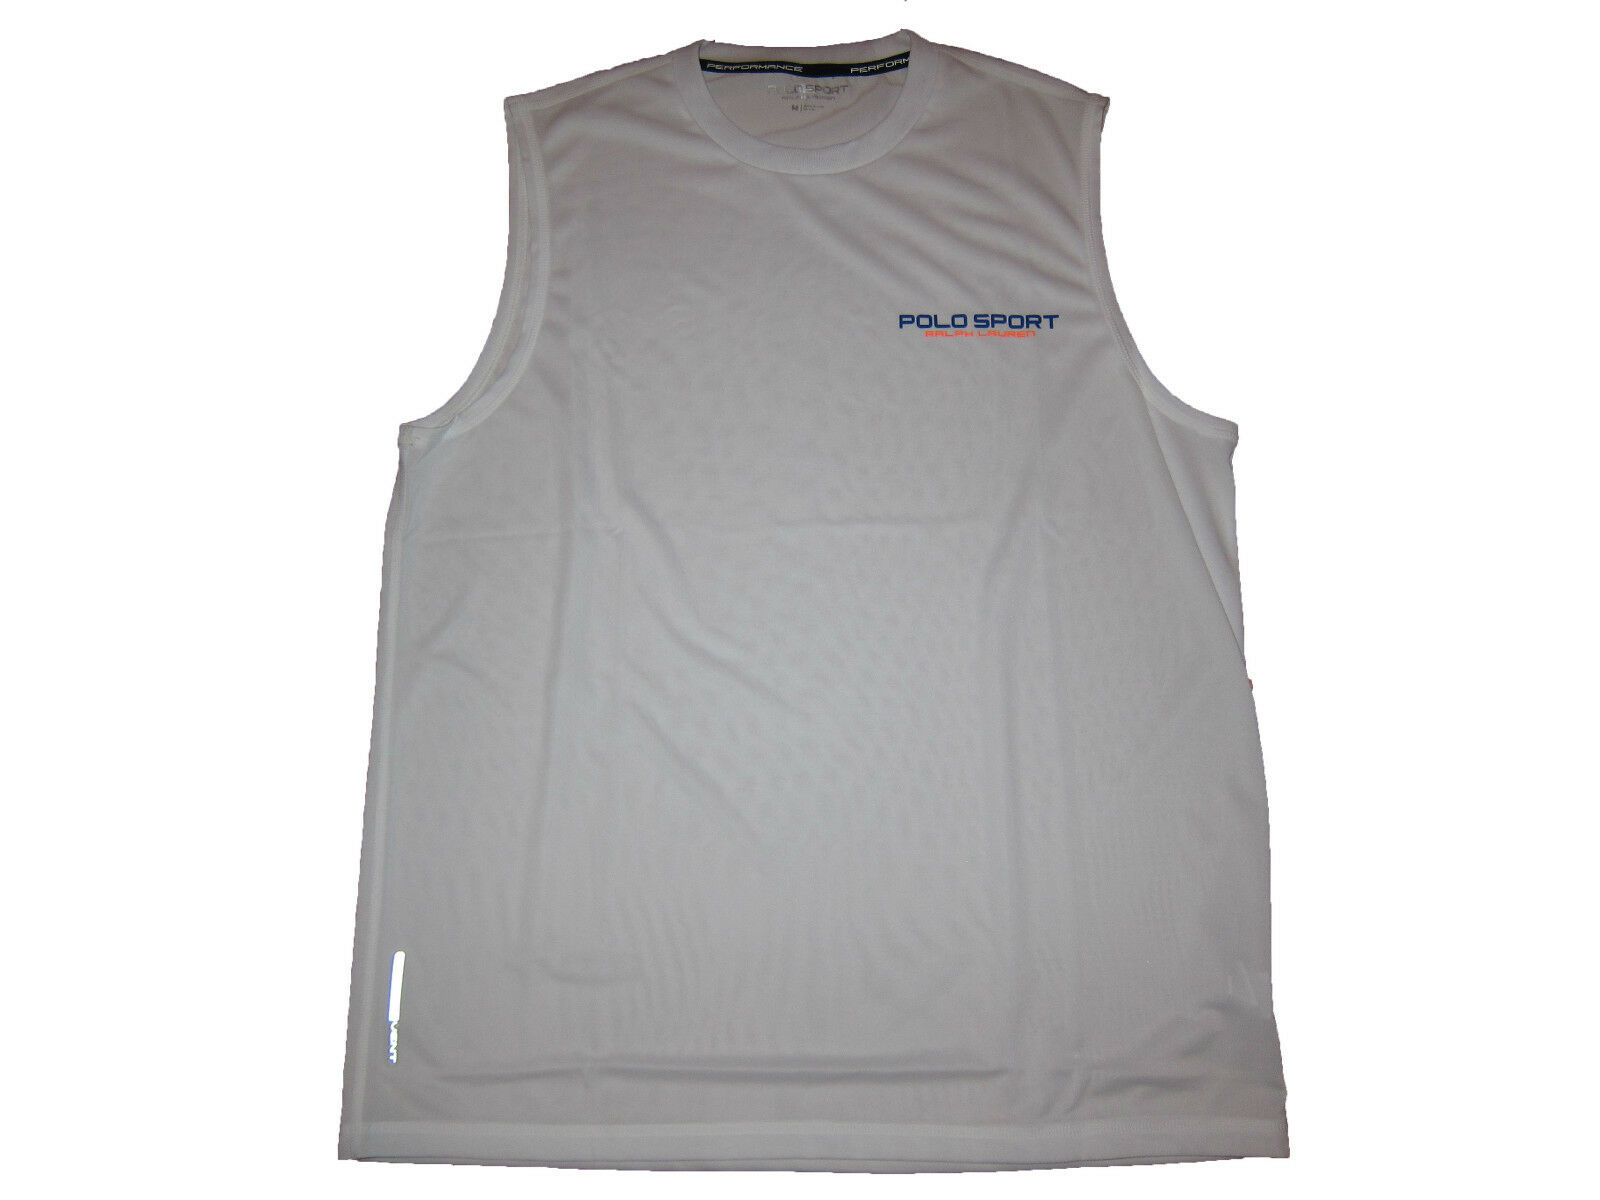 Polo Sport Ralph Lauren Weiß Athletic Cycle Active Sleeveless Gym Shirt XL